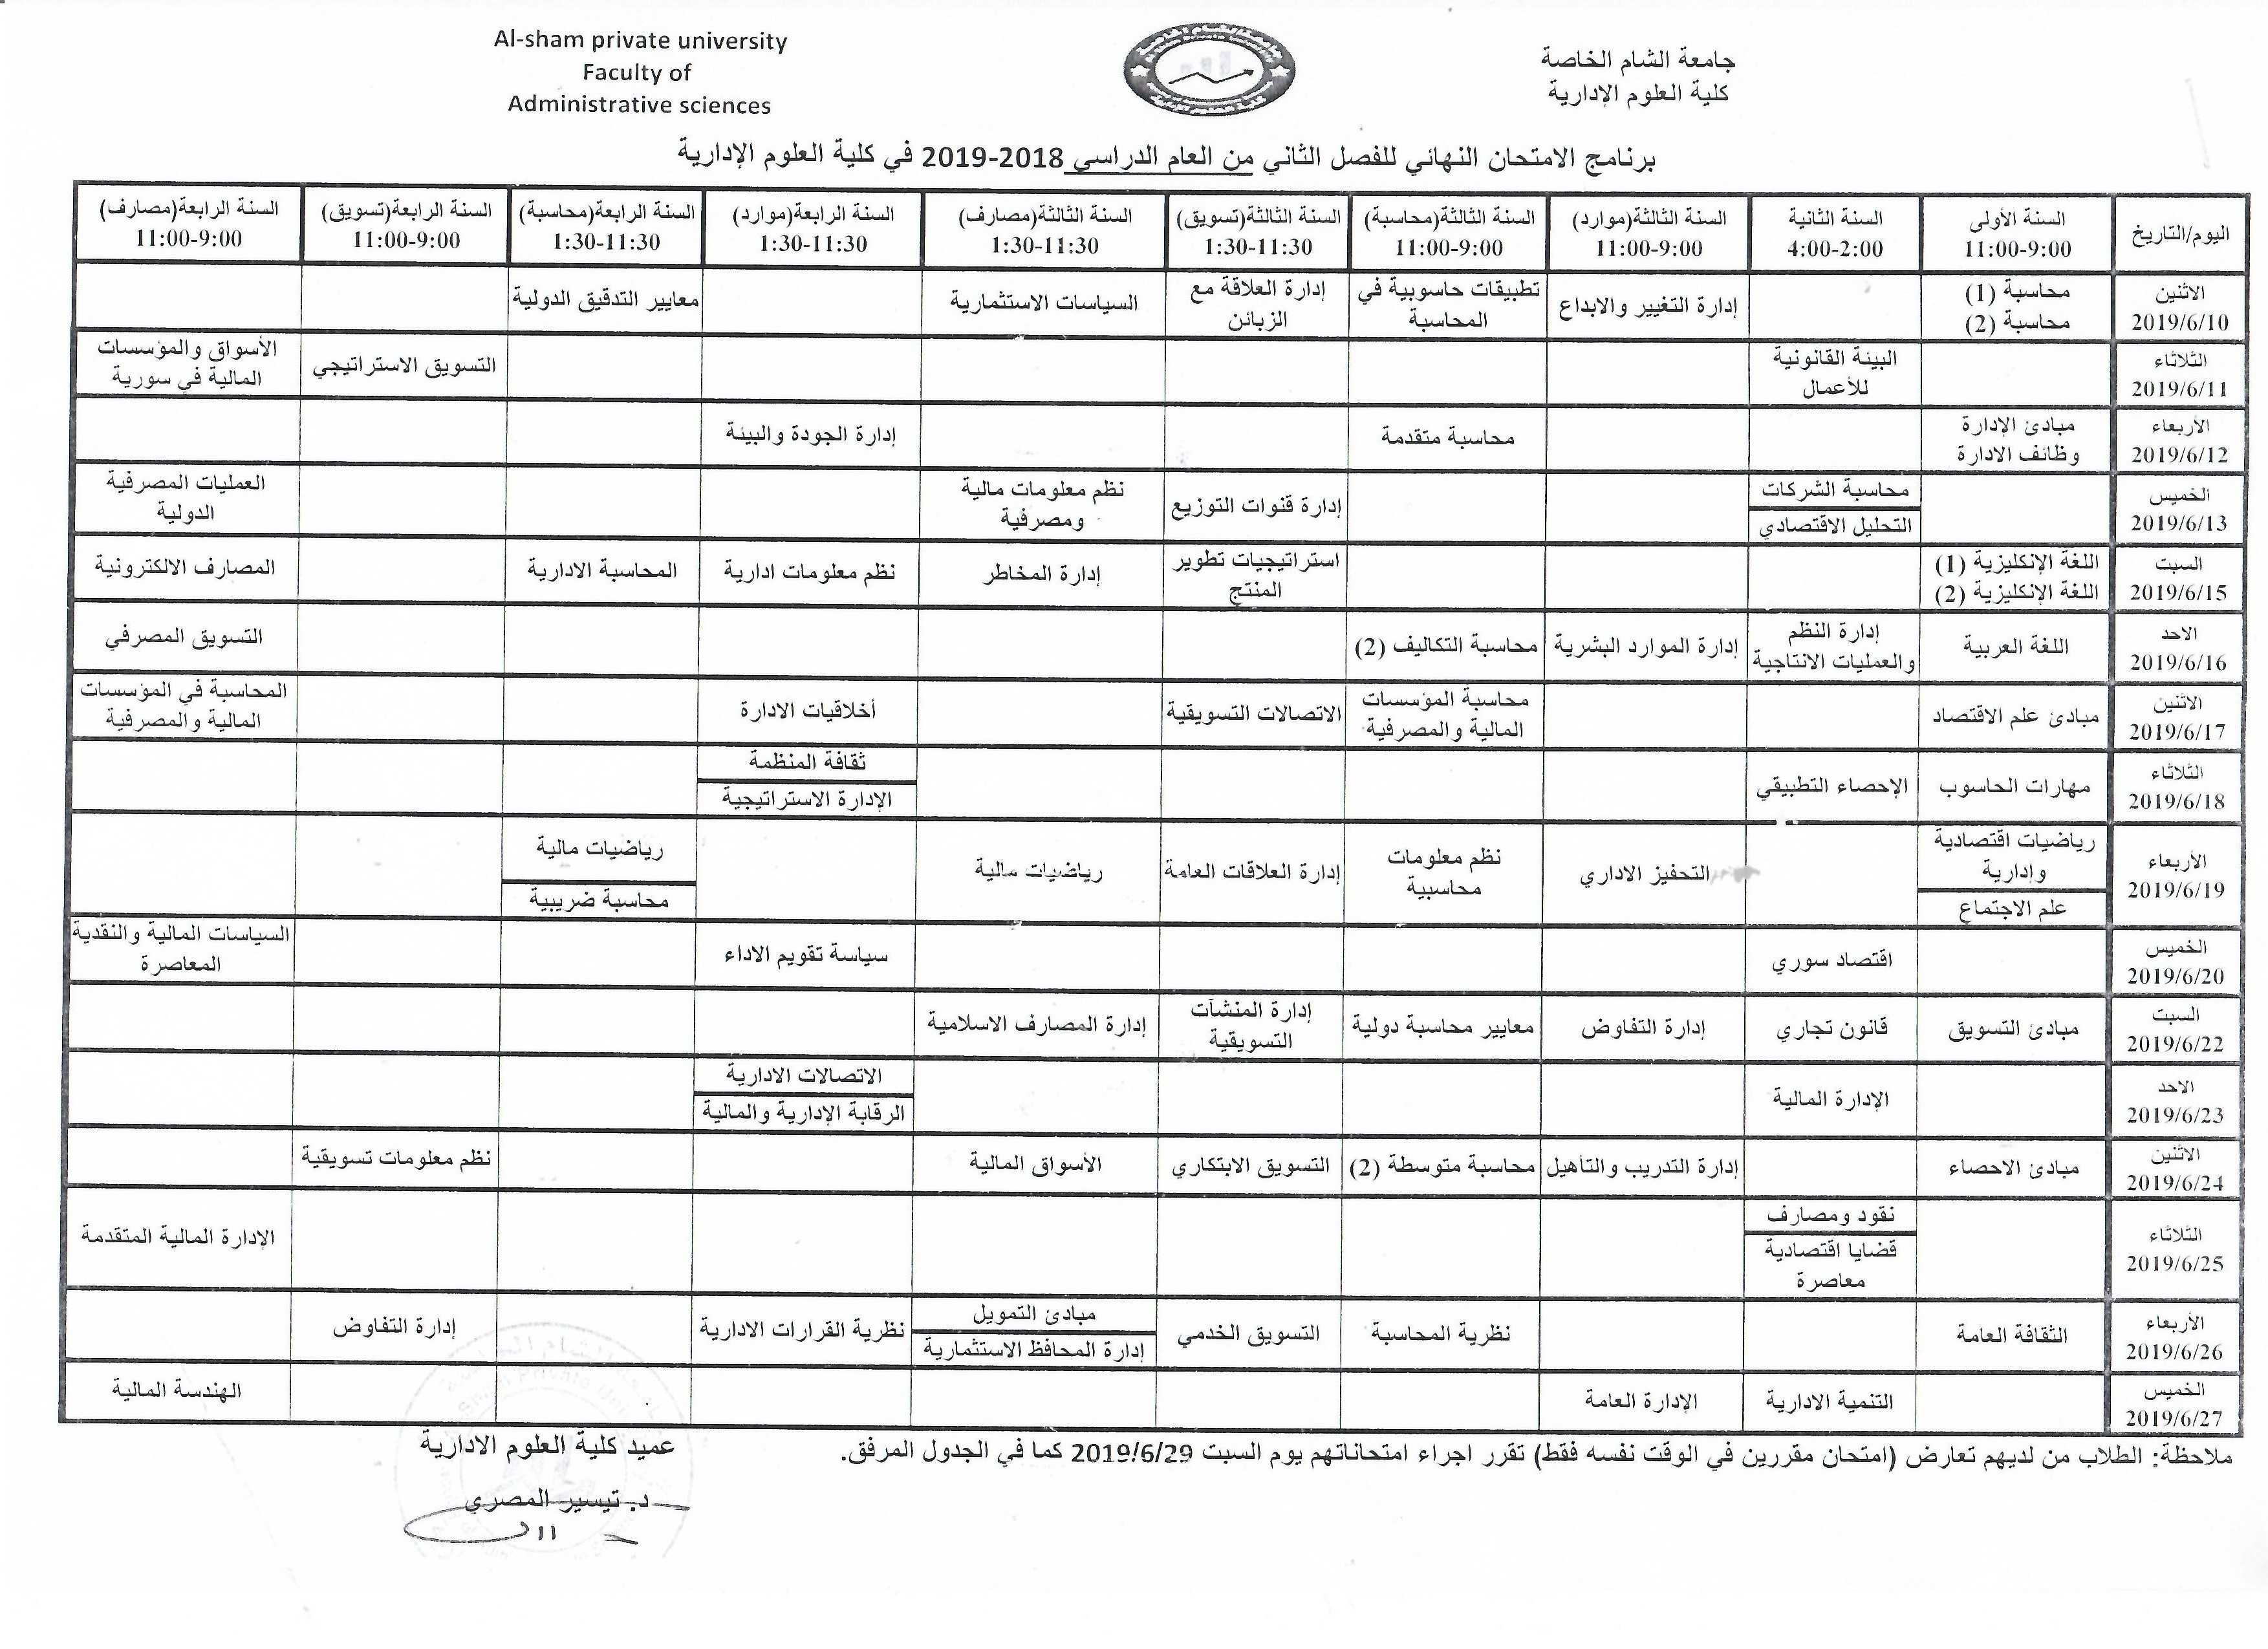 The second semester 2018/2019 exam schedule of Faculty of Administrative Sciences: